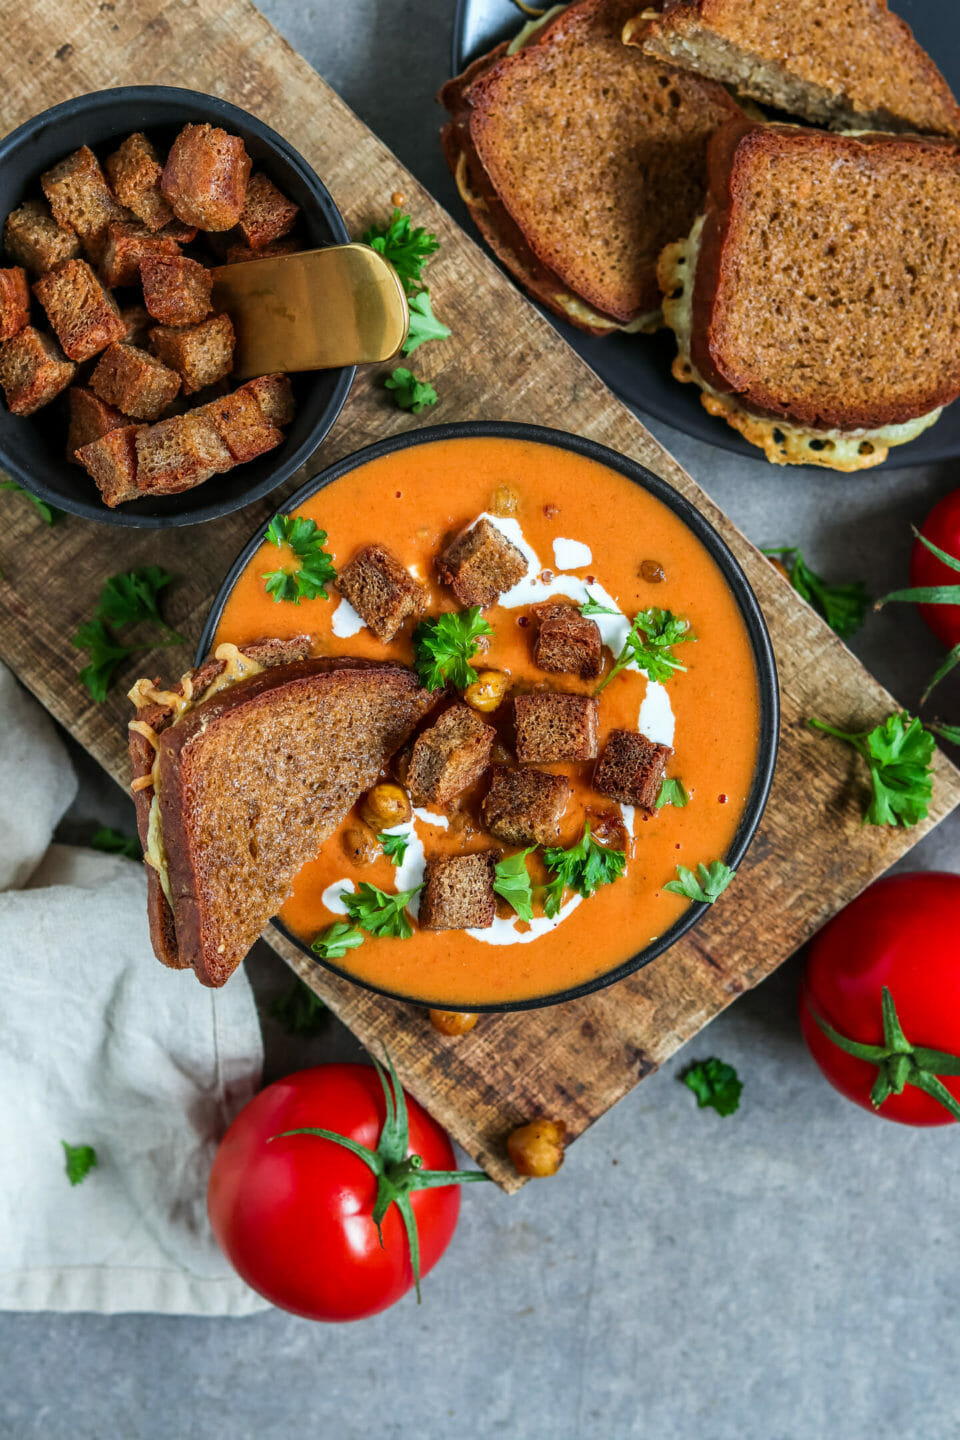 Creamy tomato soup served with coconut milk, croutons, cheese sandwiches and crispy chickpeas.